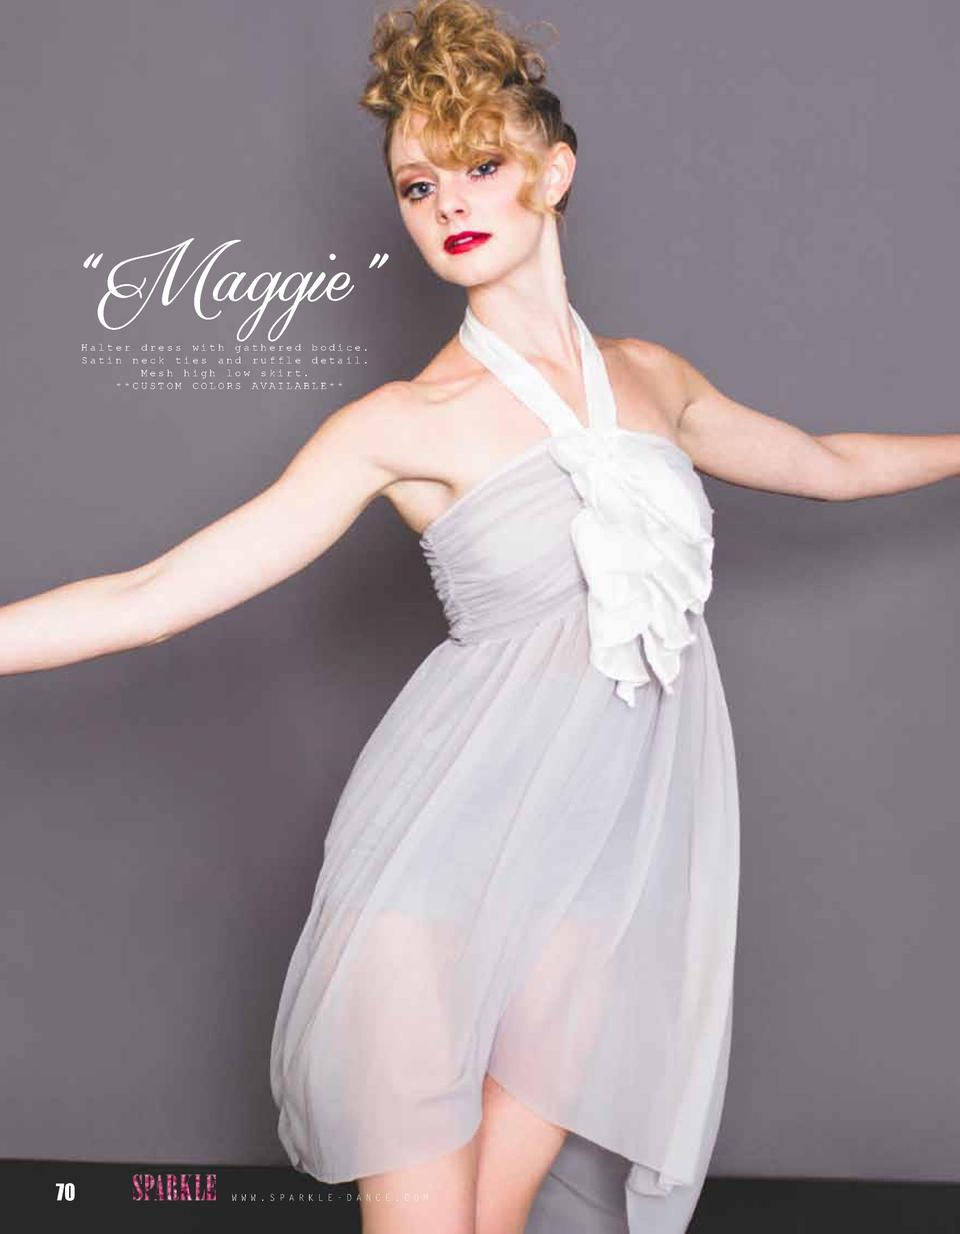 Maggie    Halter dress with gathered bodice. Satin neck ties and ruffle detail. Mesh high low skirt.   CUSTOM COLORS AV...